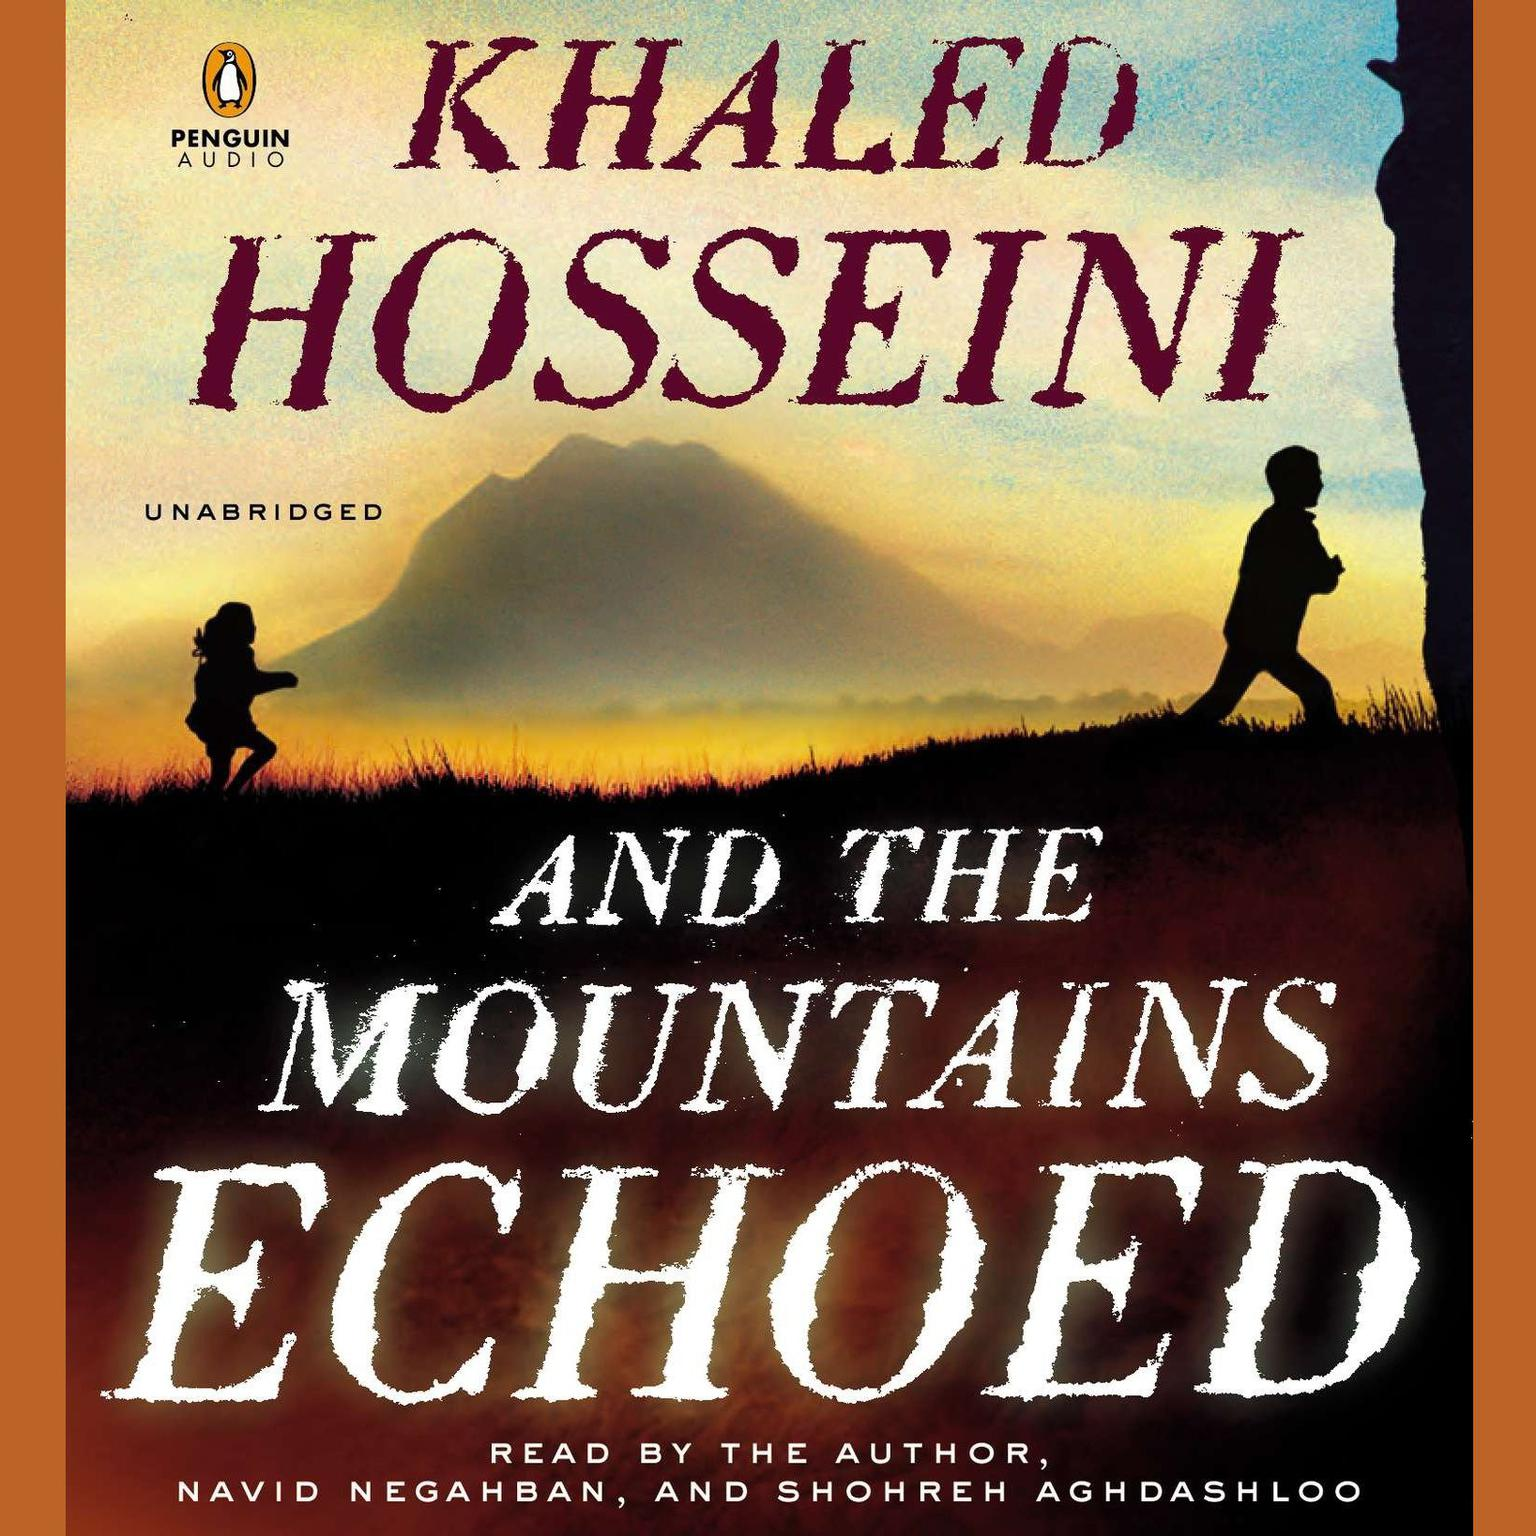 Printable And the Mountains Echoed: a novel by the bestselling author of The Kite Runner and A Thousand Splendid Sun s Audiobook Cover Art